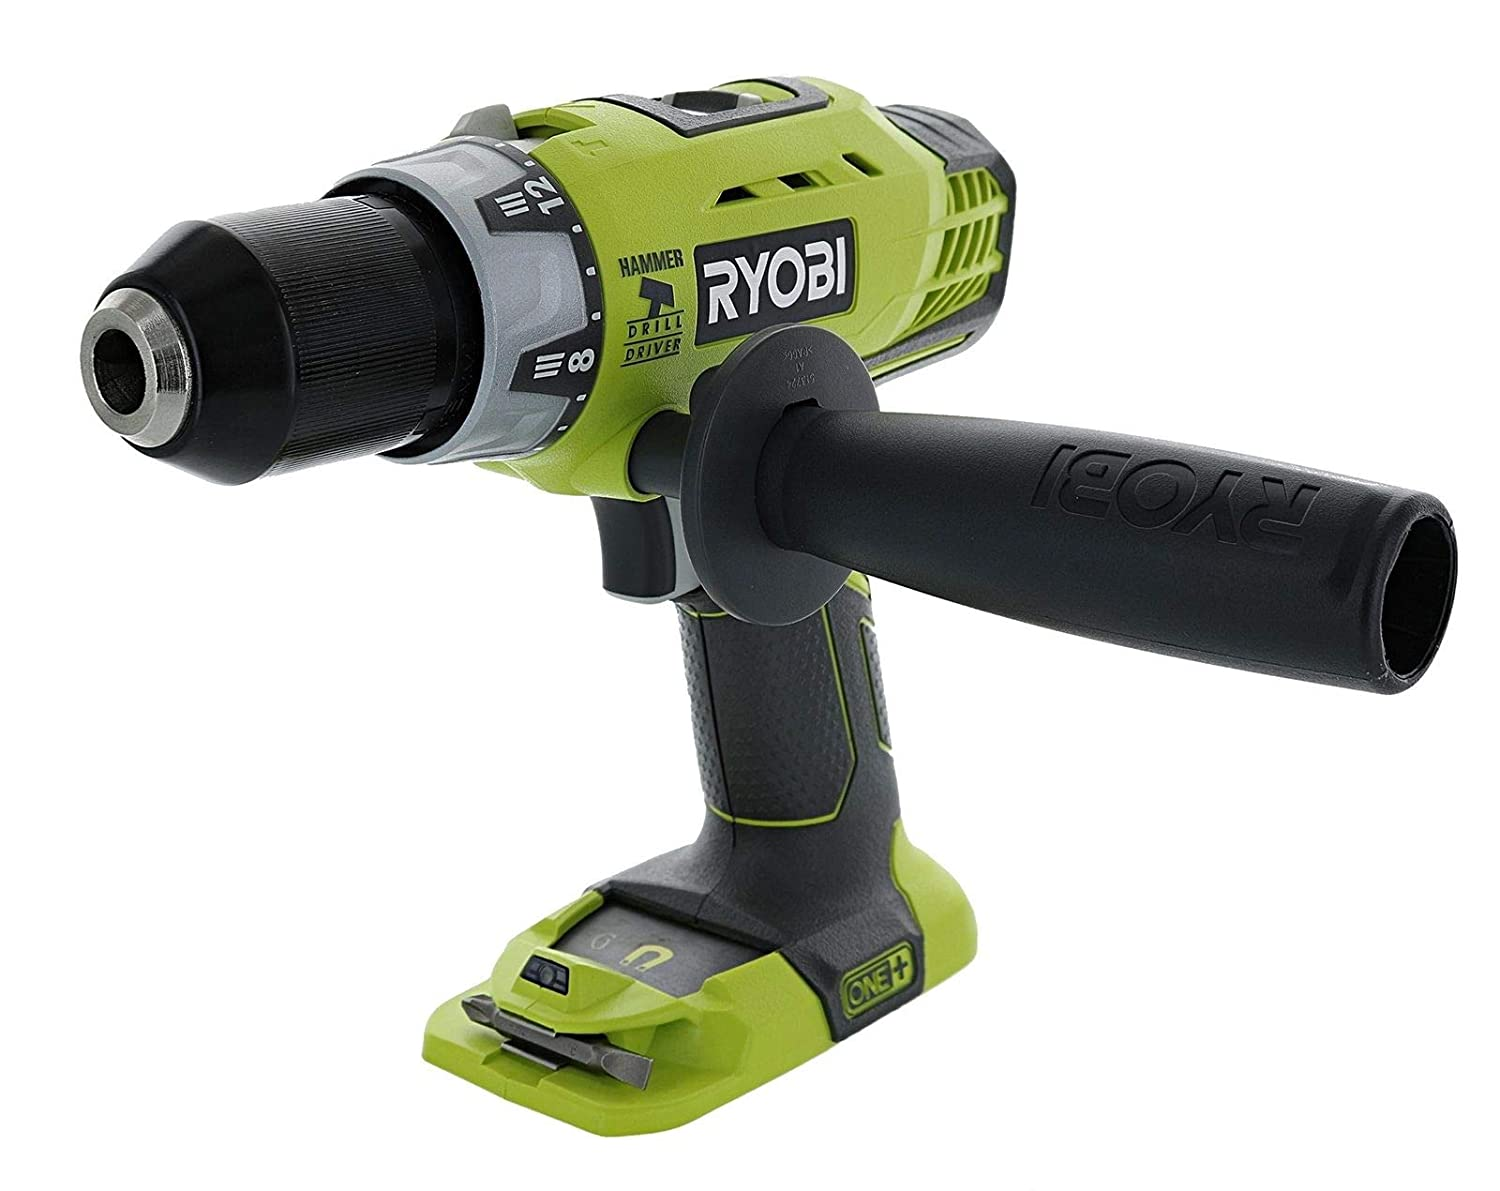 Ryobi P214 One+ 18 Volt Lithium Ion 1/2 Inch 600 Pound Torque Hammer Drill/Driver (Tool Only) with Handle (Non-Retail Packaging)